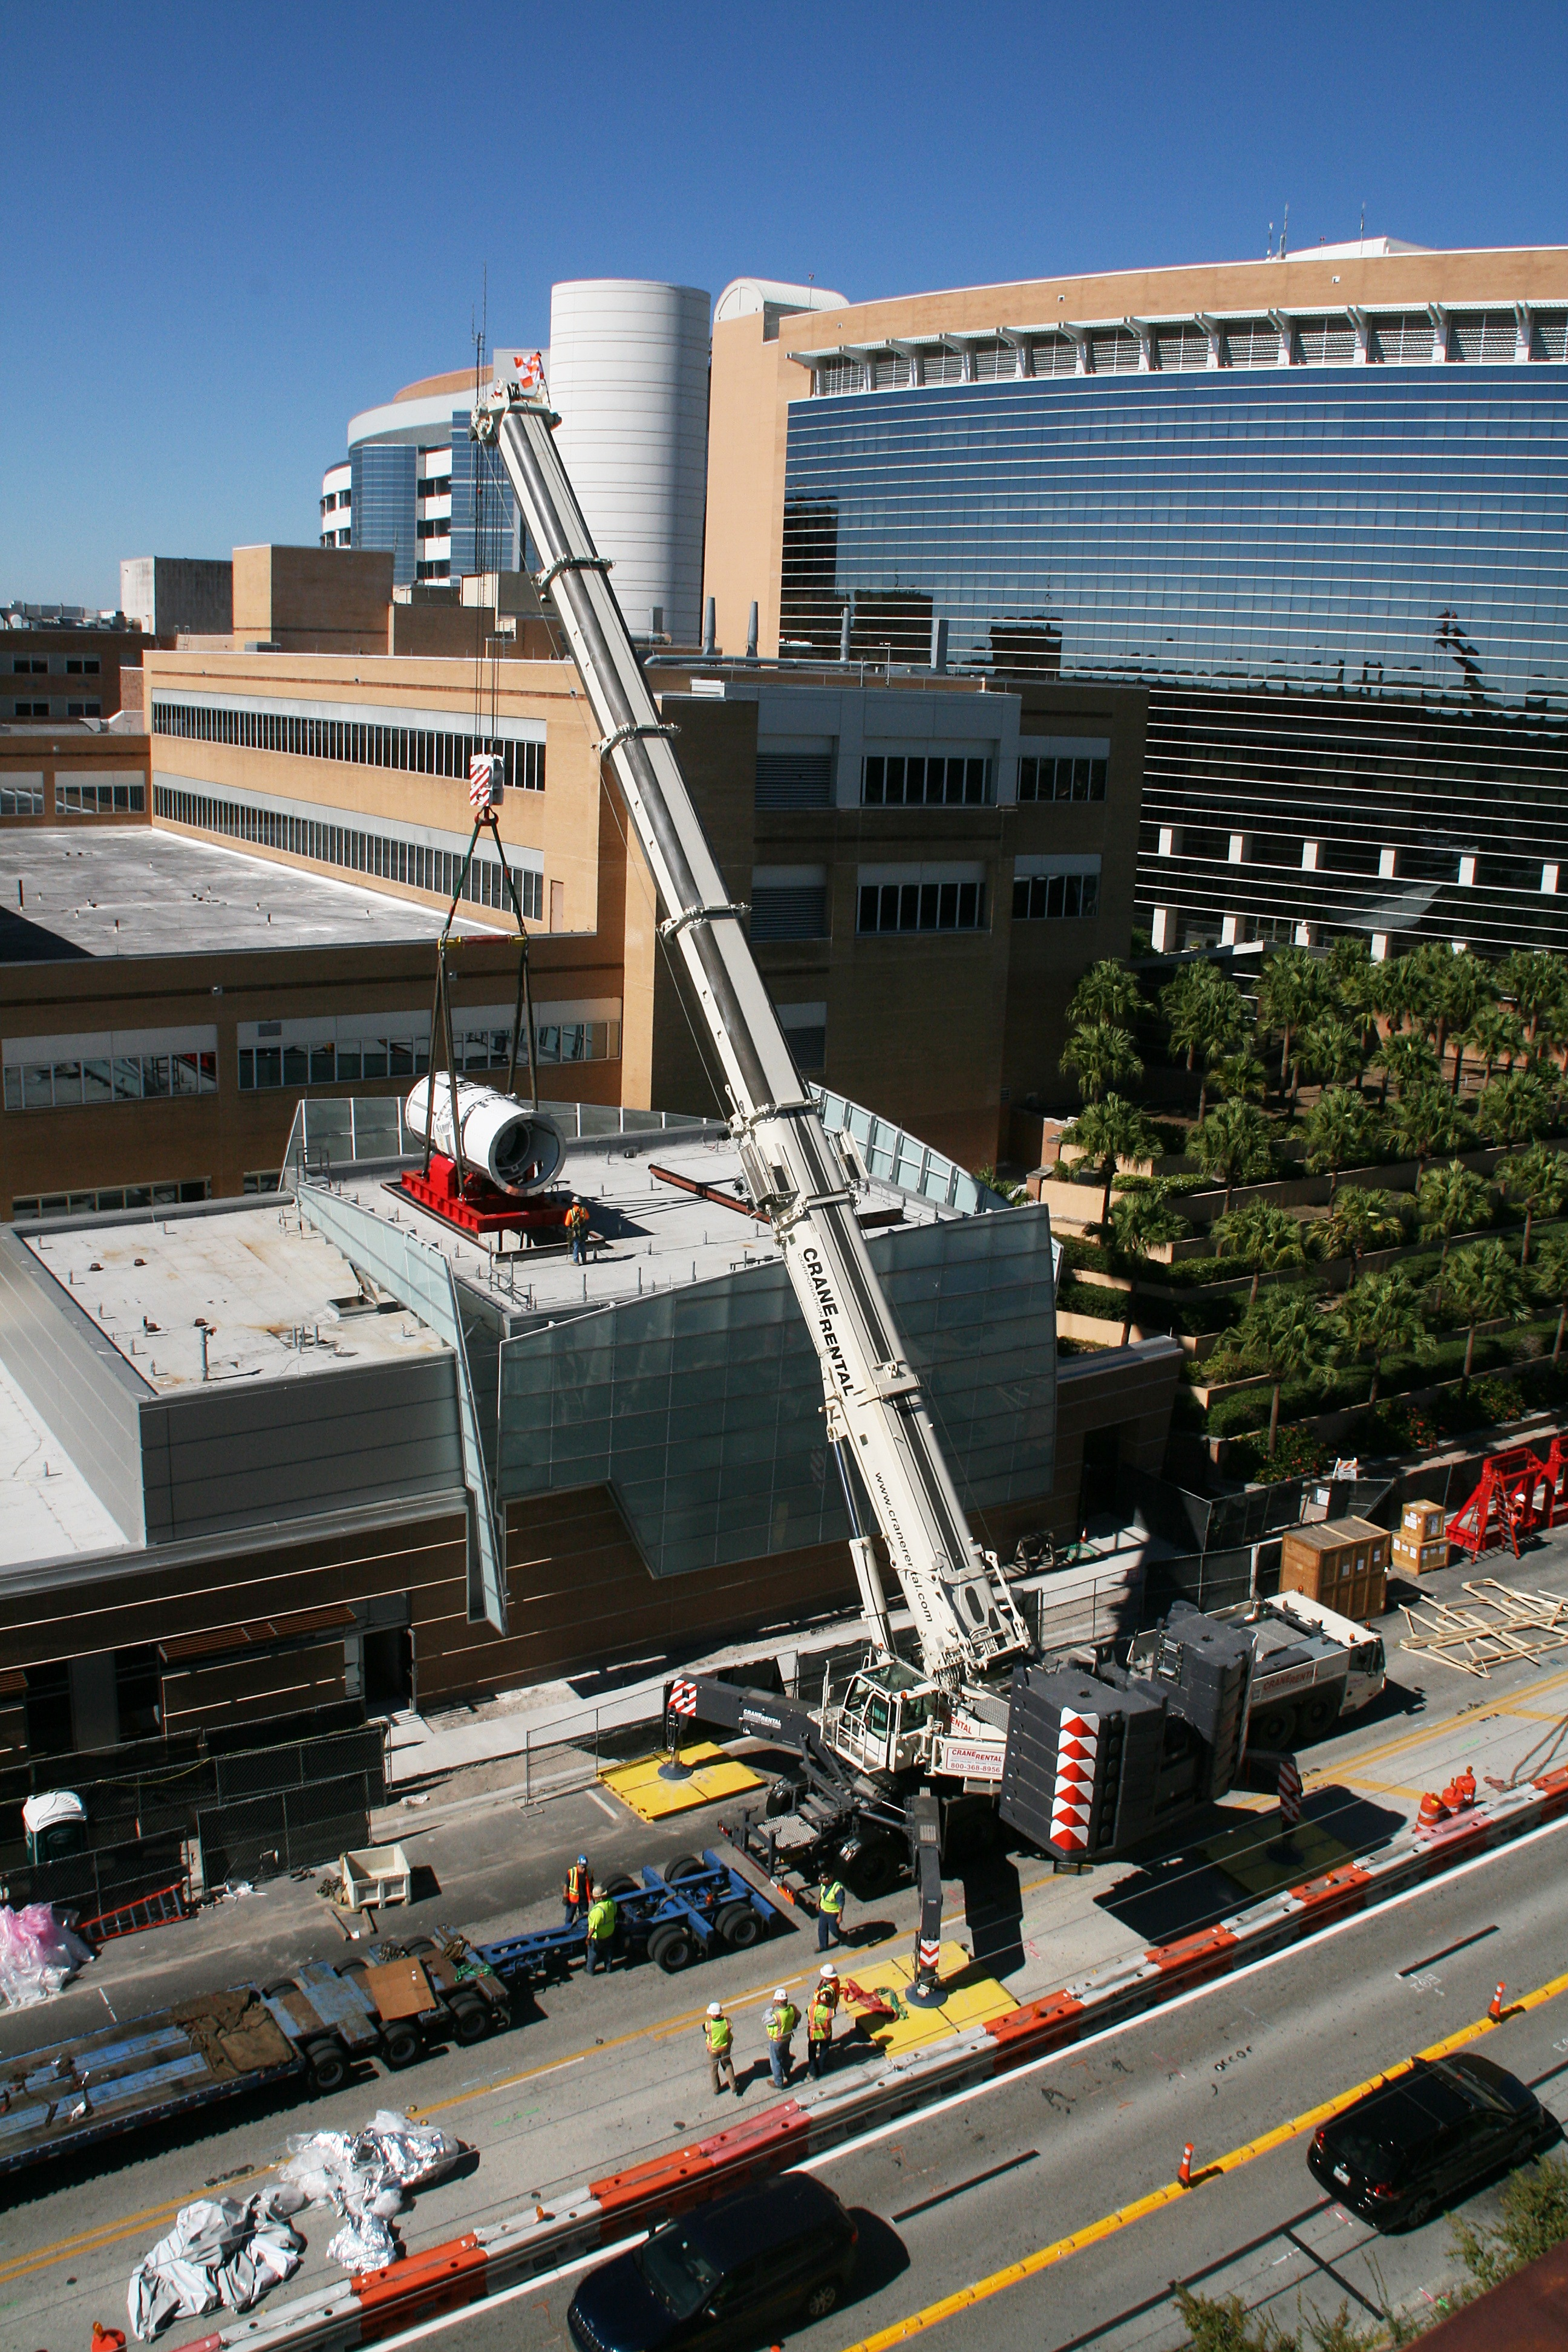 Crane Rental Corporation Terex Ac500 2 Lifts A Proton Accelerator Into New Cancer Center further Genie Scissor Lift Parts Manual as well Articulating Knuckle Boom additionally Index additionally Index. on terex corporation locations